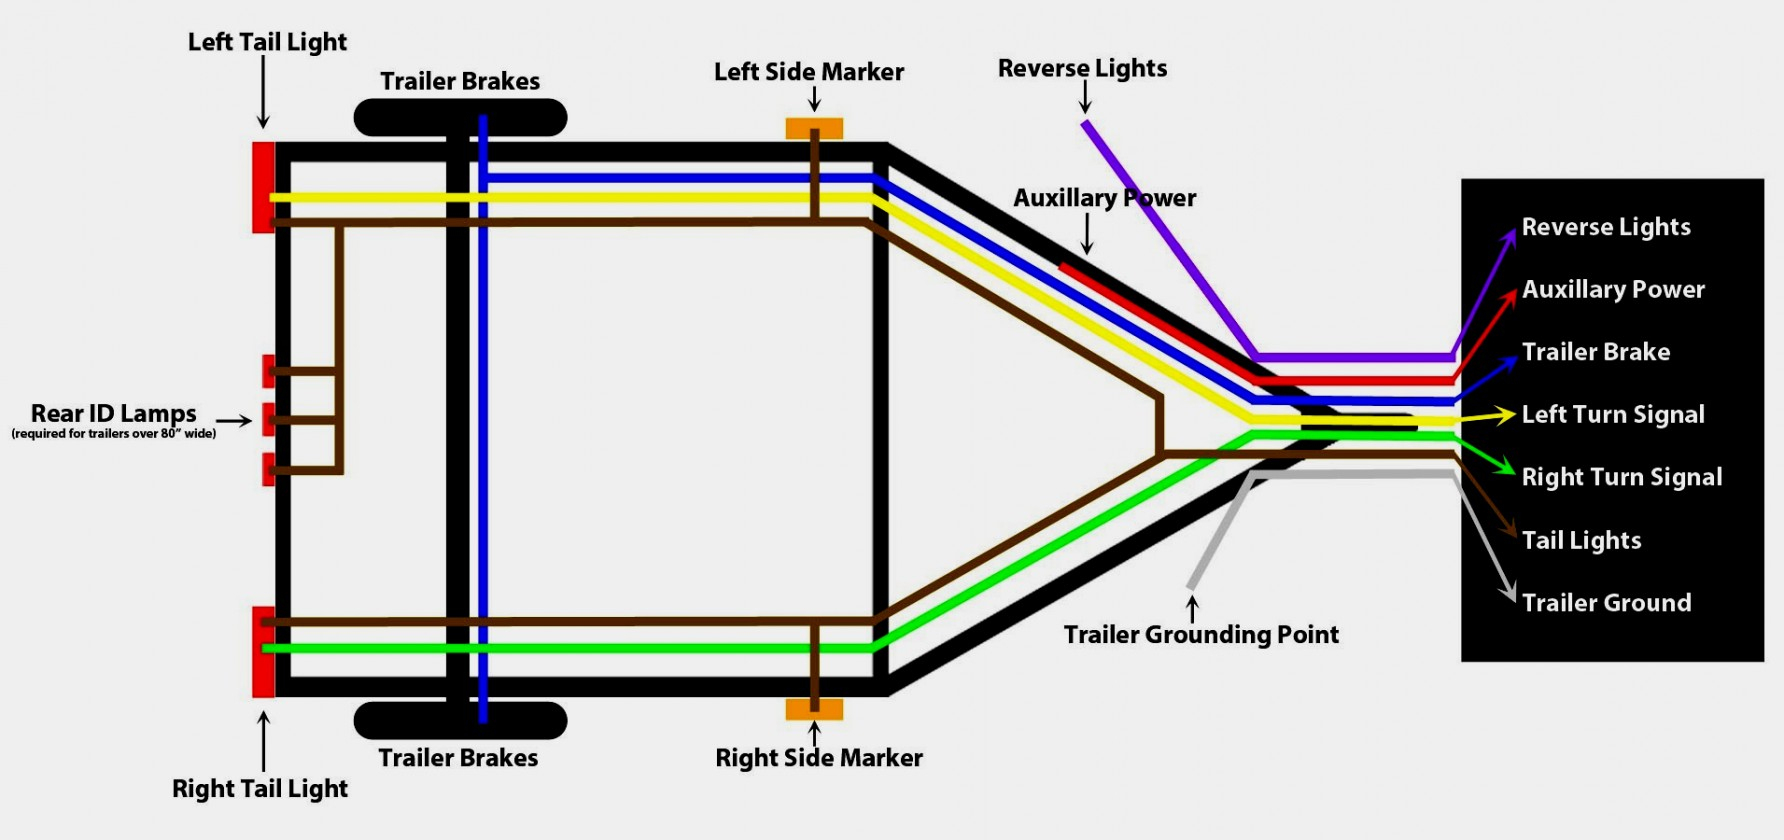 Wiring Diagram For Car Trailer Lights - Schematics Wiring Diagram - Trailer Light Wiring Diagram Uk